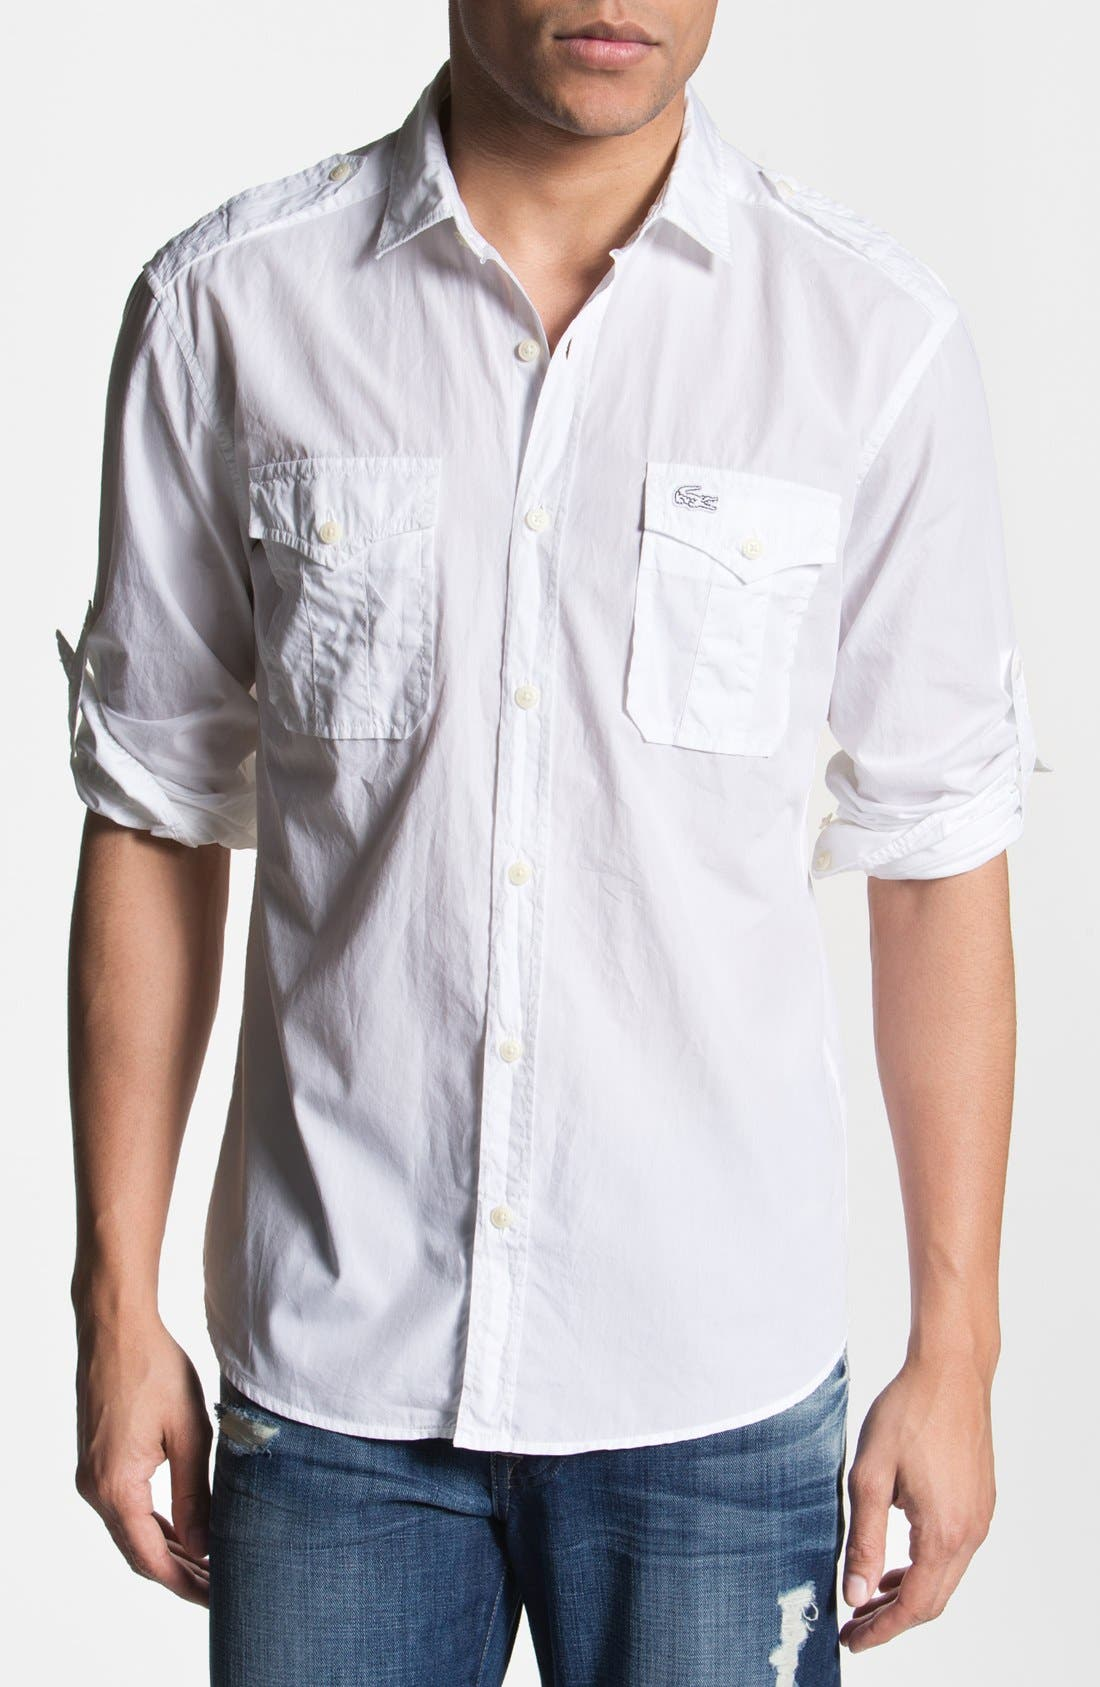 Alternate Image 1 Selected - Lacoste Slim Fit Sport Shirt